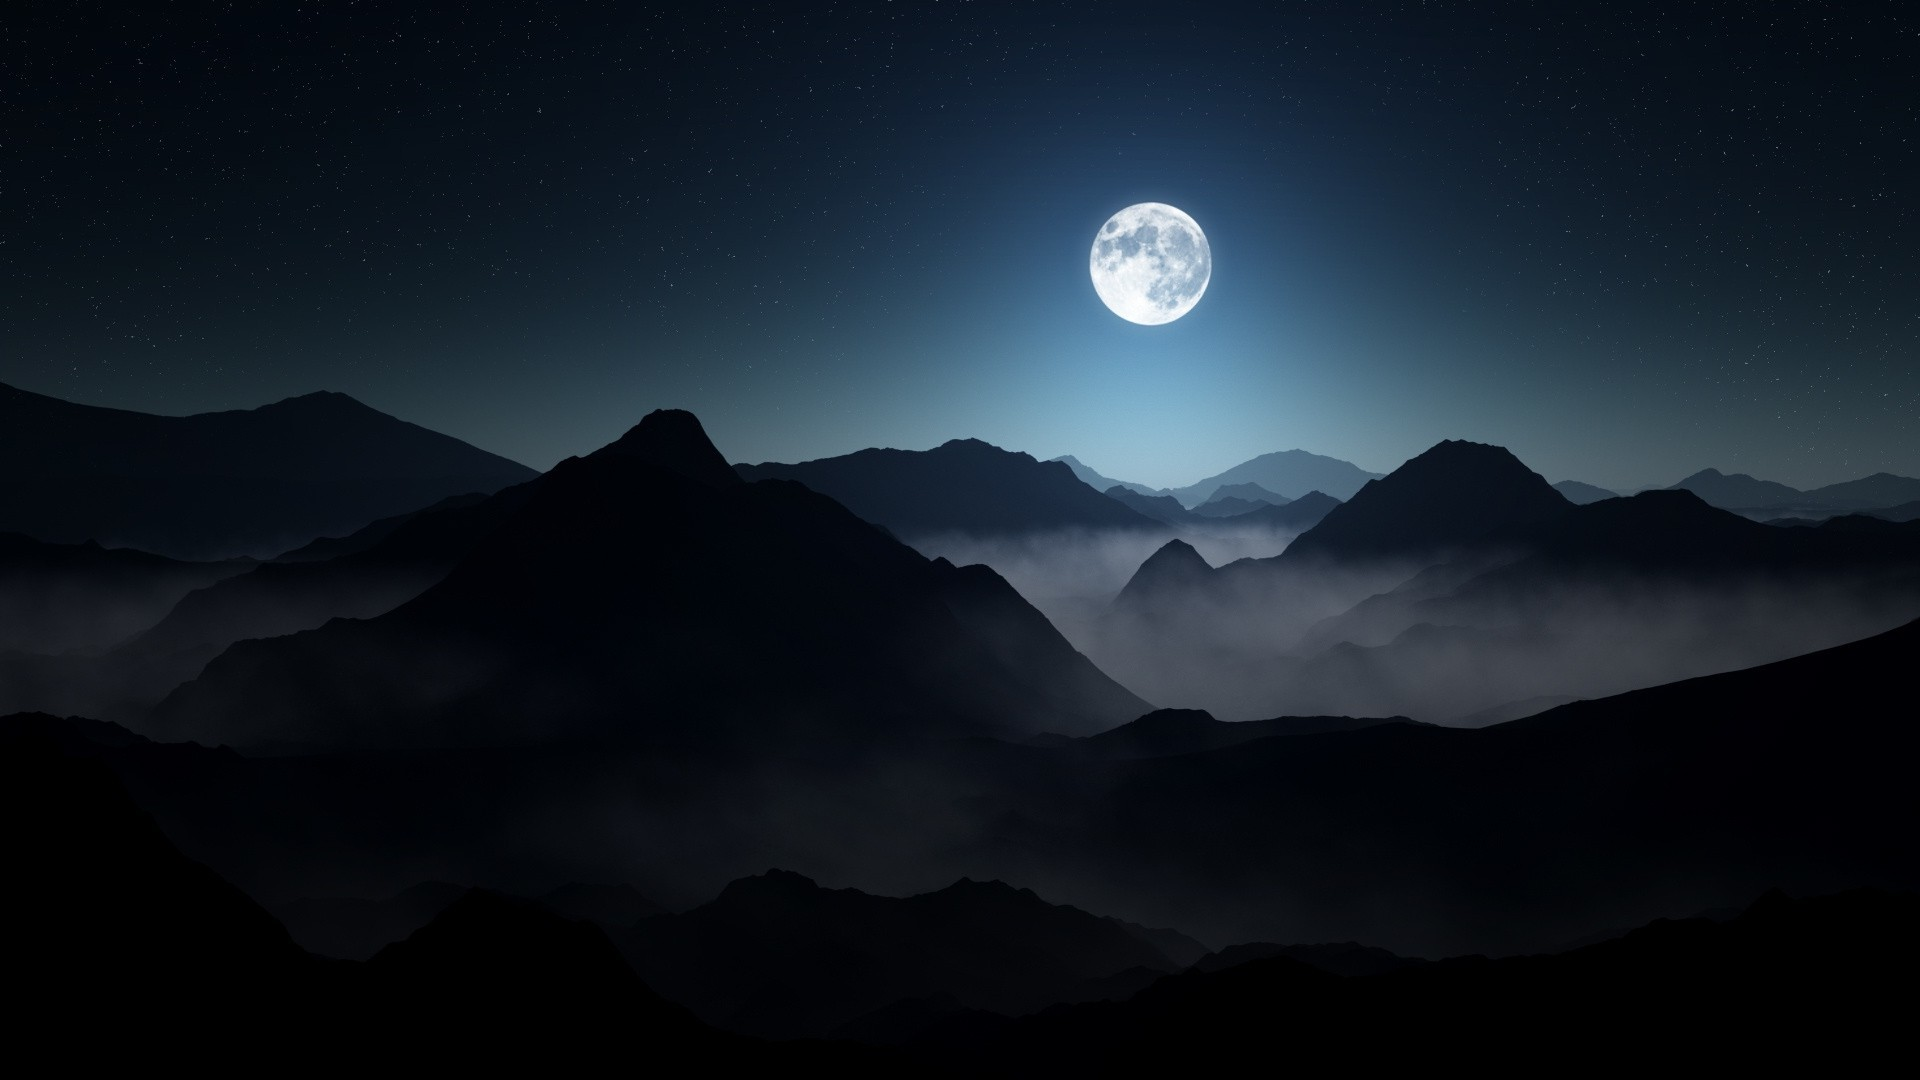 Tropical Waves Sky Mountains Clouds Island Moon Night: Moonlight Night Wallpaper ·①